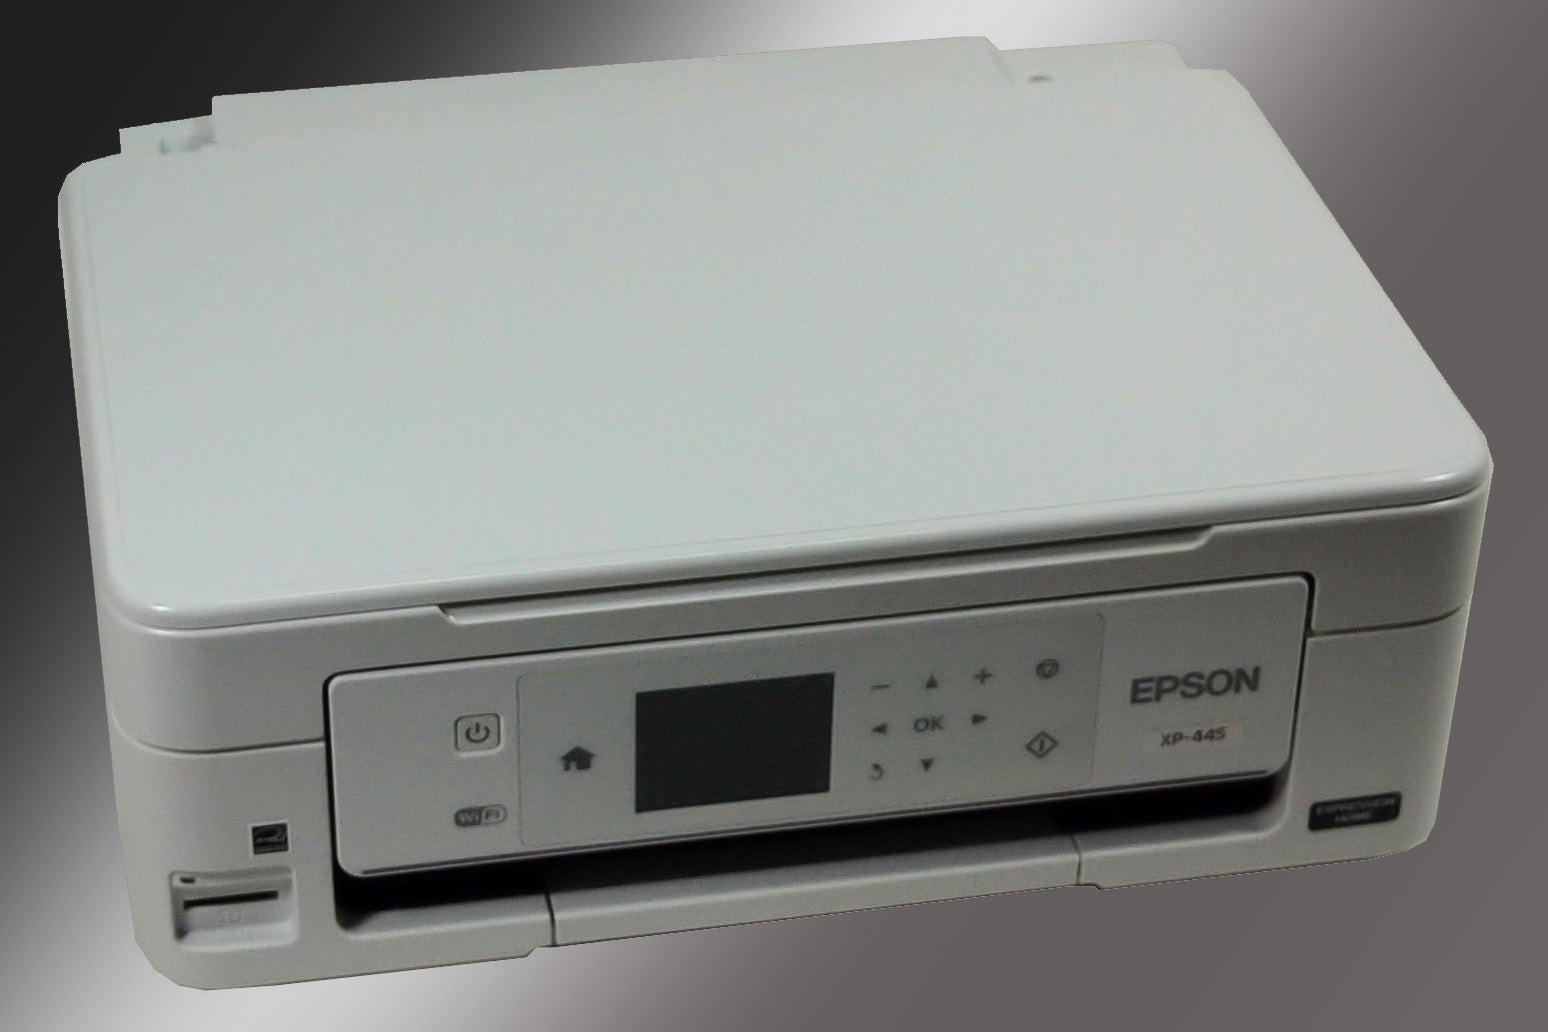 Epson Expression Home XP-445 and XP-442 review | Trusted Reviews